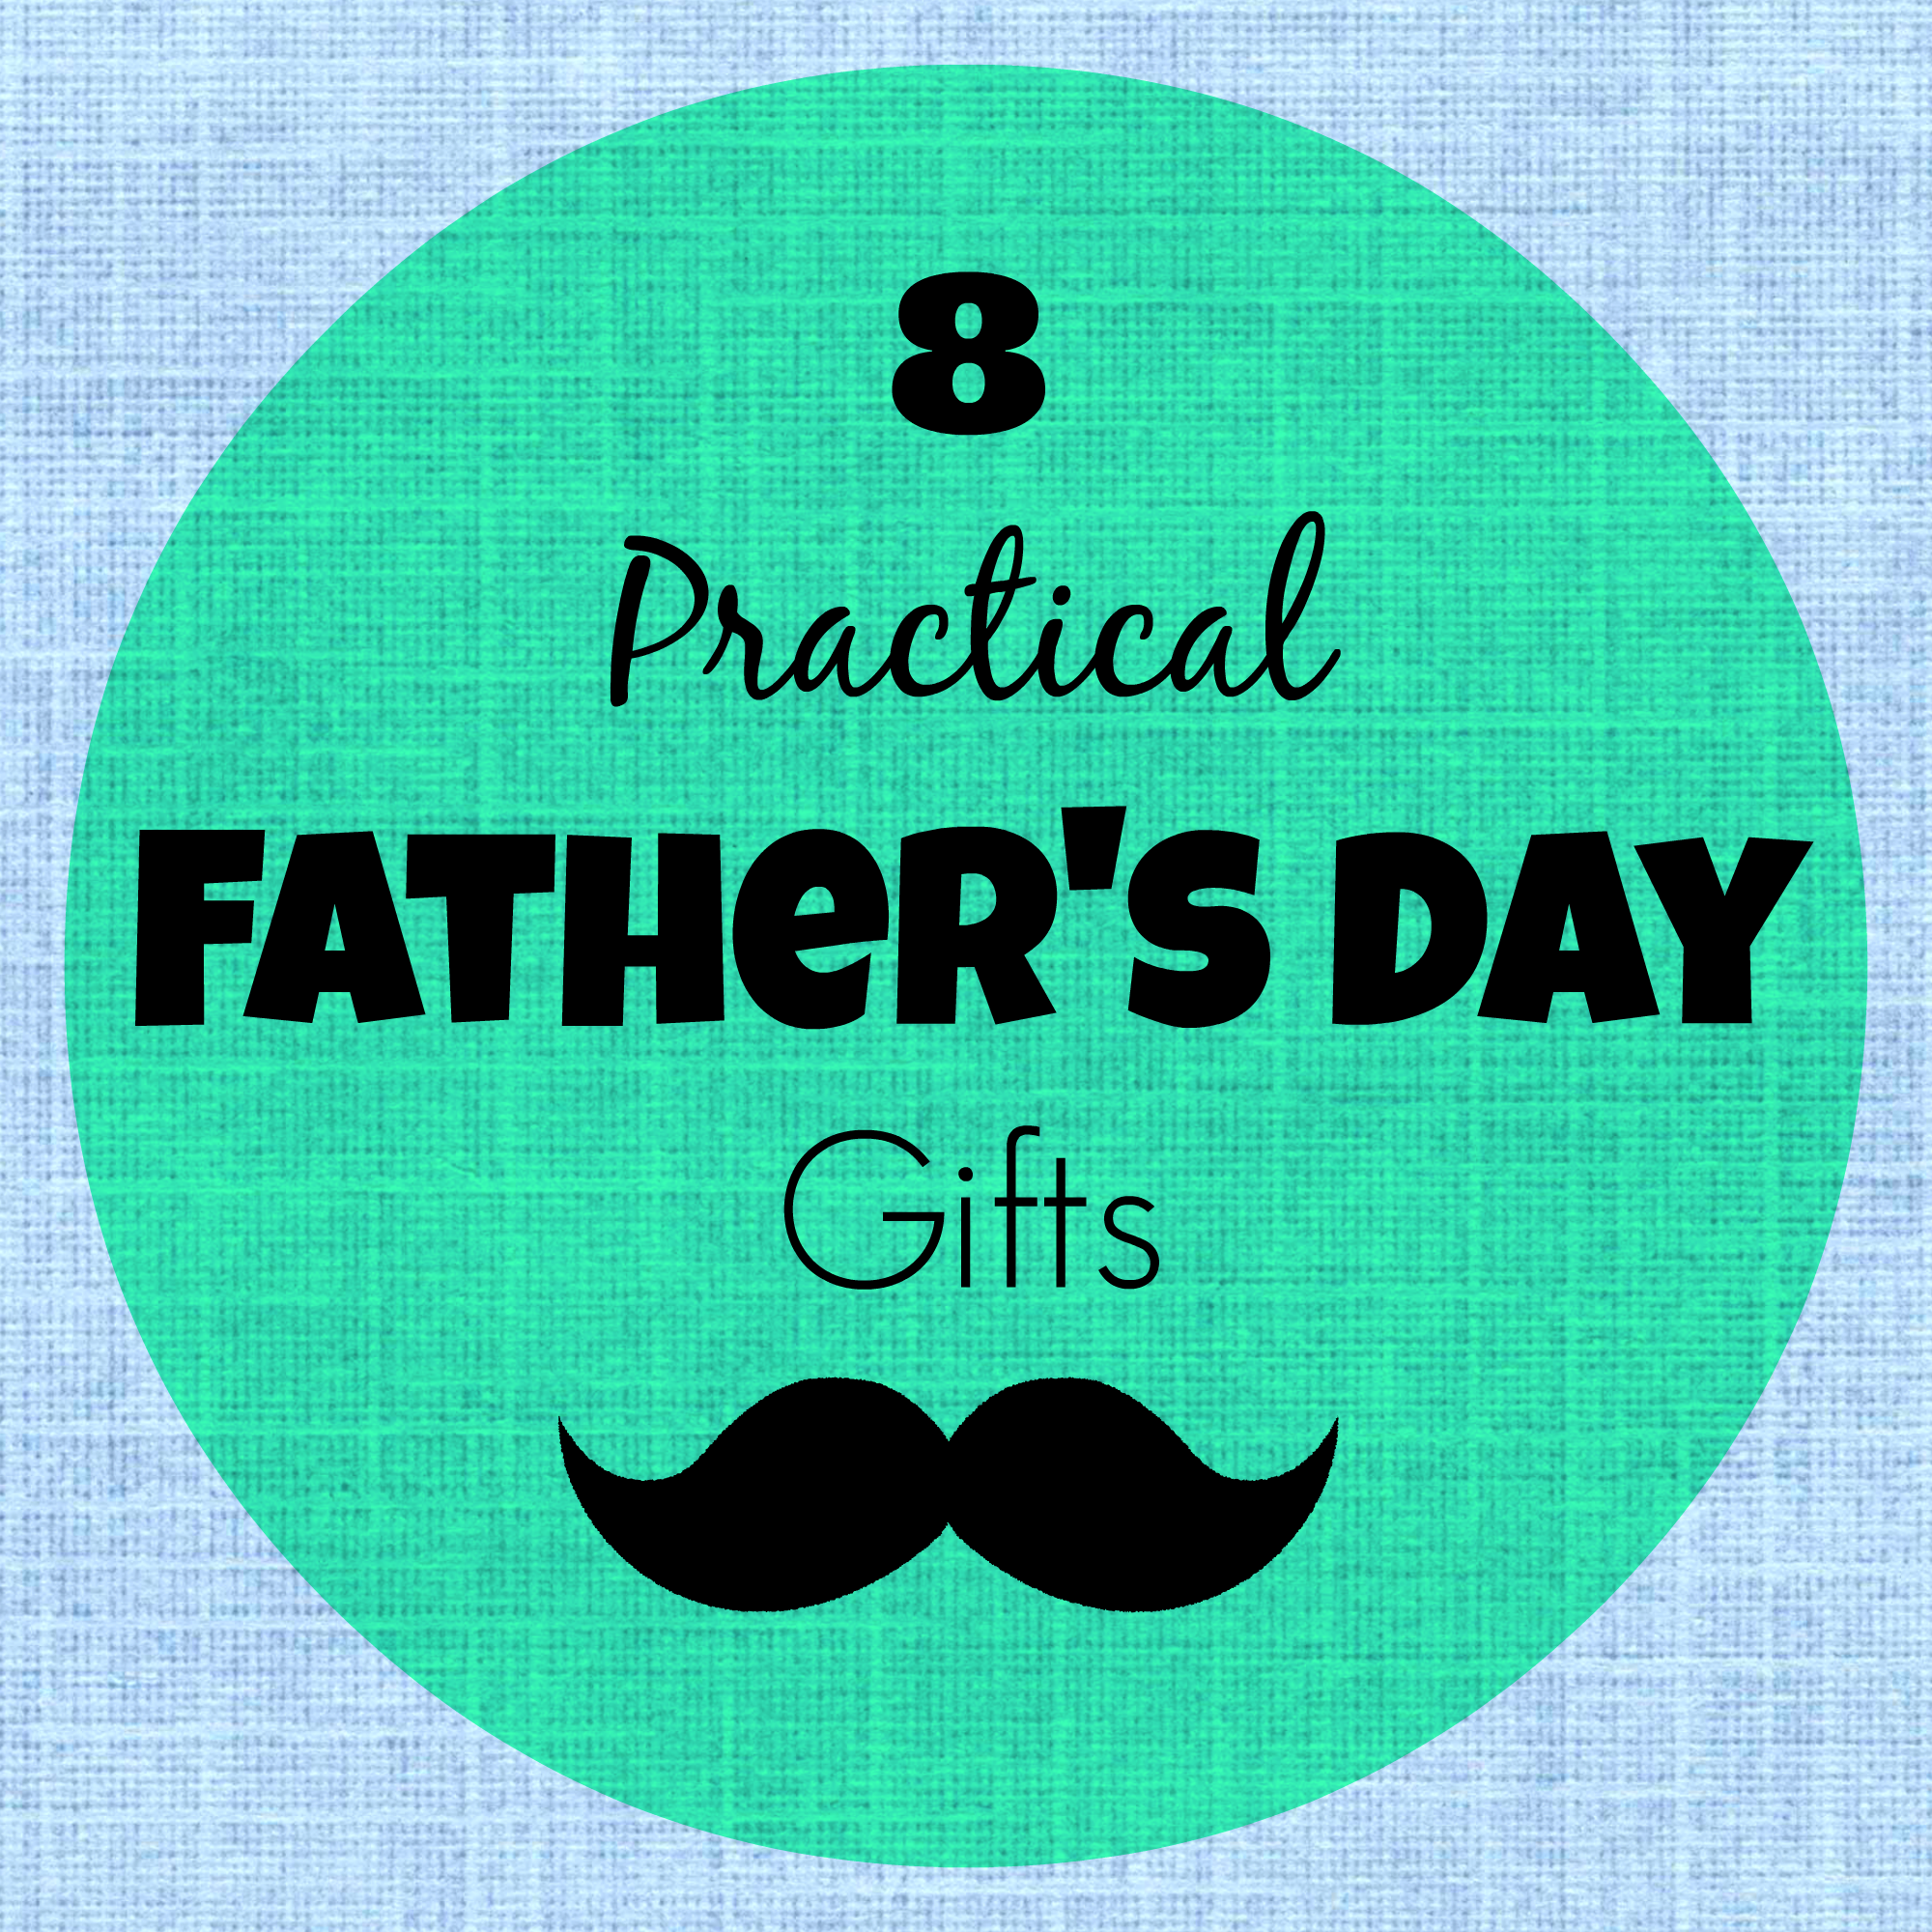 8 Practical Father's Day Gifts